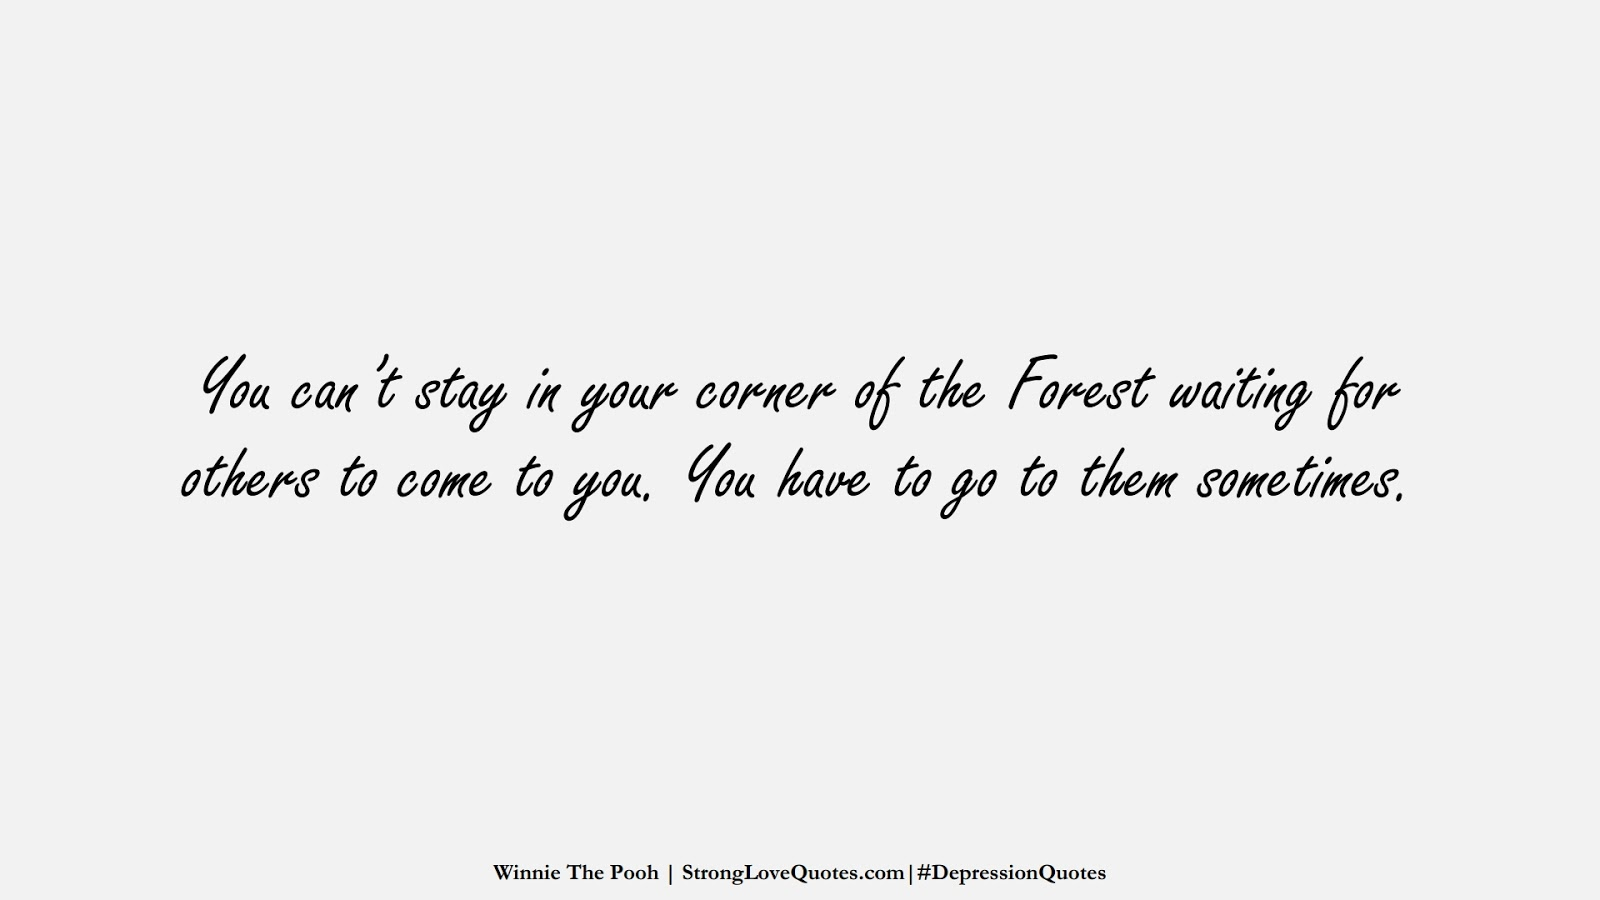 You can't stay in your corner of the Forest waiting for others to come to you. You have to go to them sometimes. (Winnie The Pooh);  #DepressionQuotes